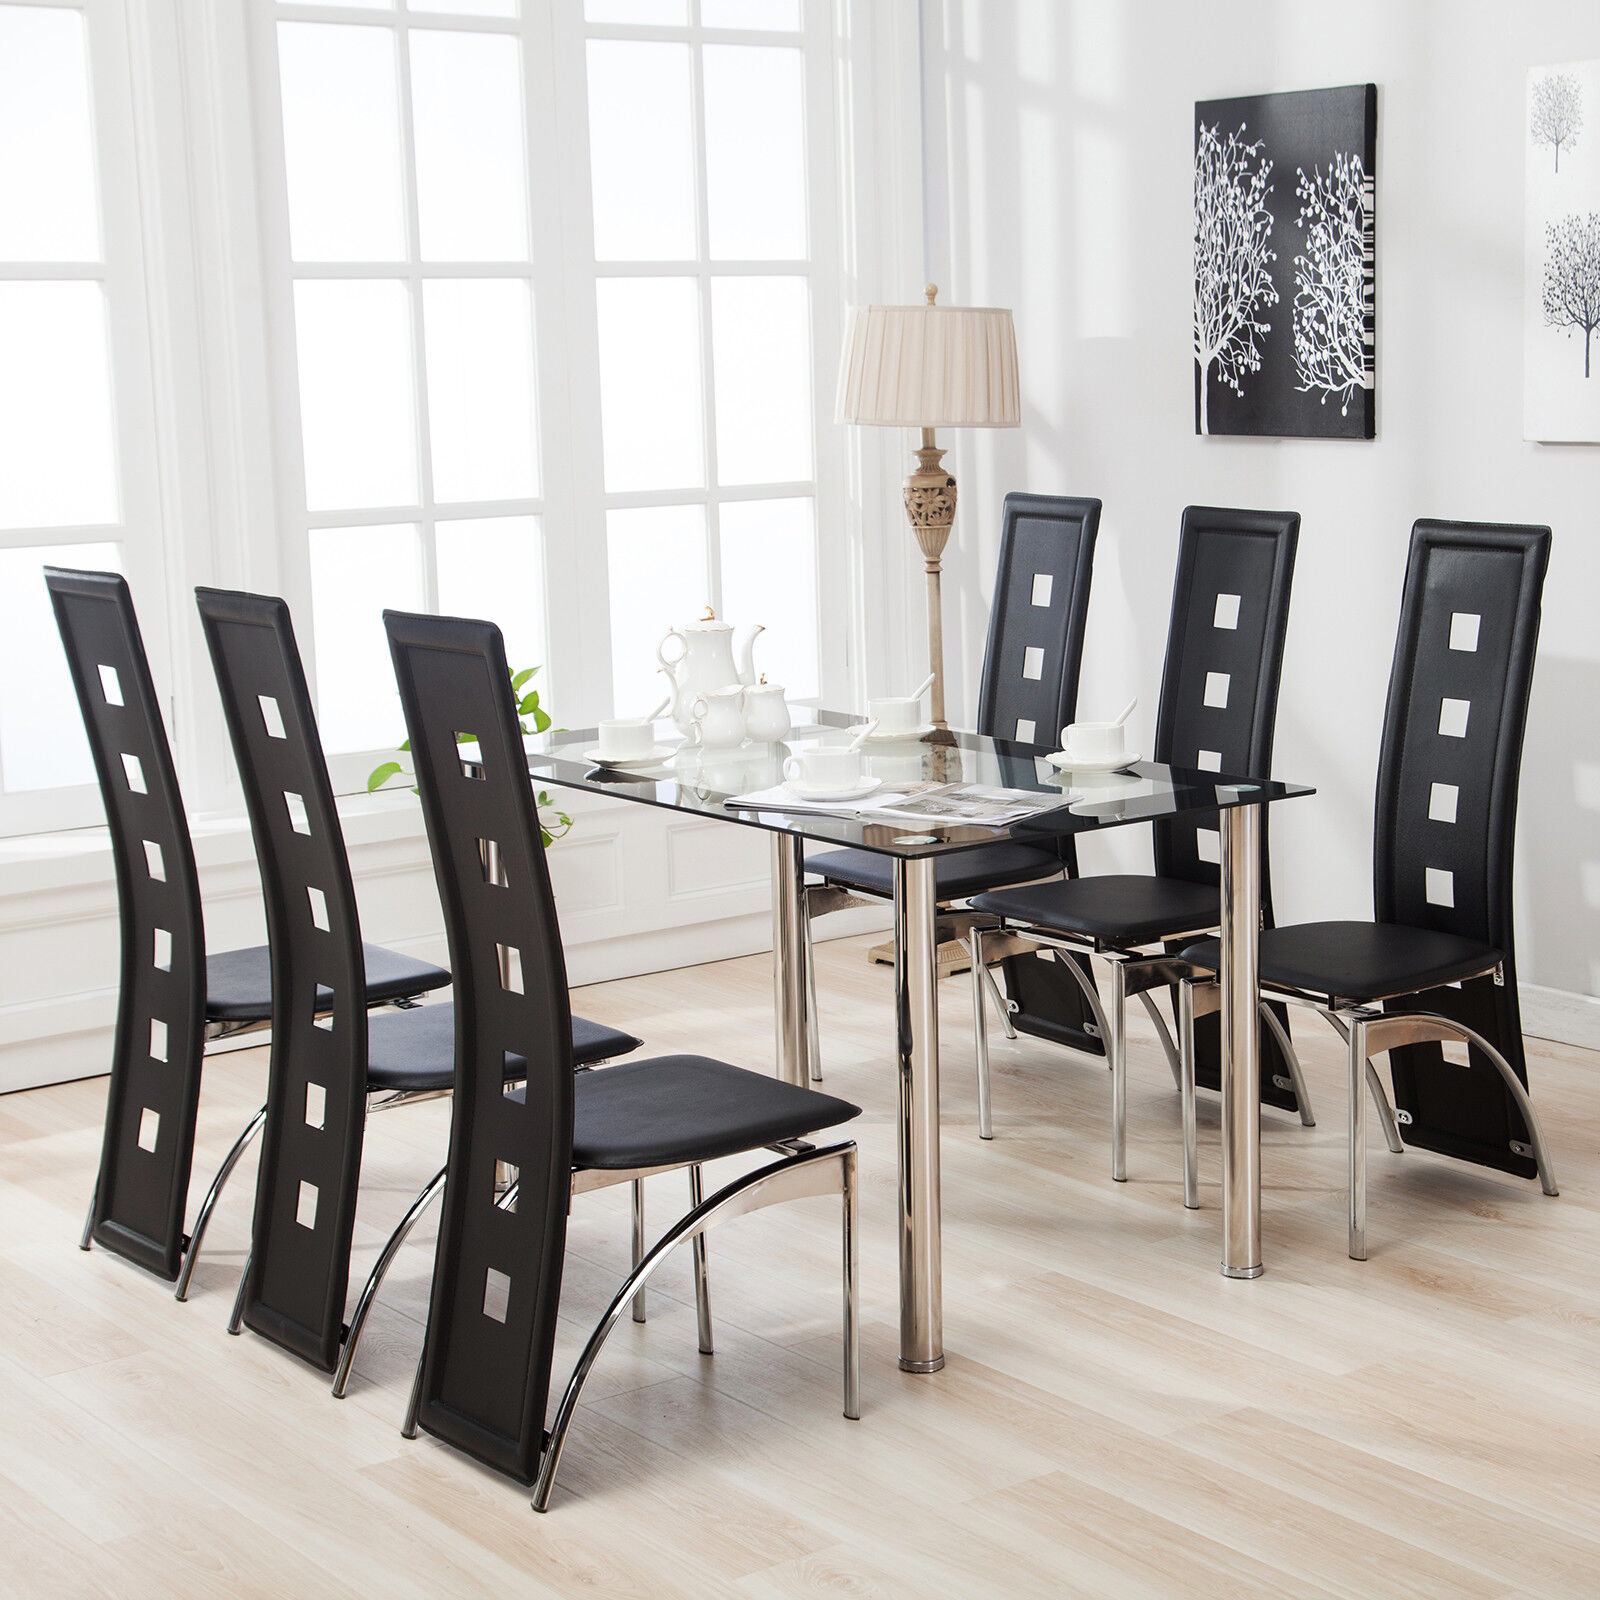 6 Black High Back Chairs Gl Dining Table Sets Modern Room Furniture